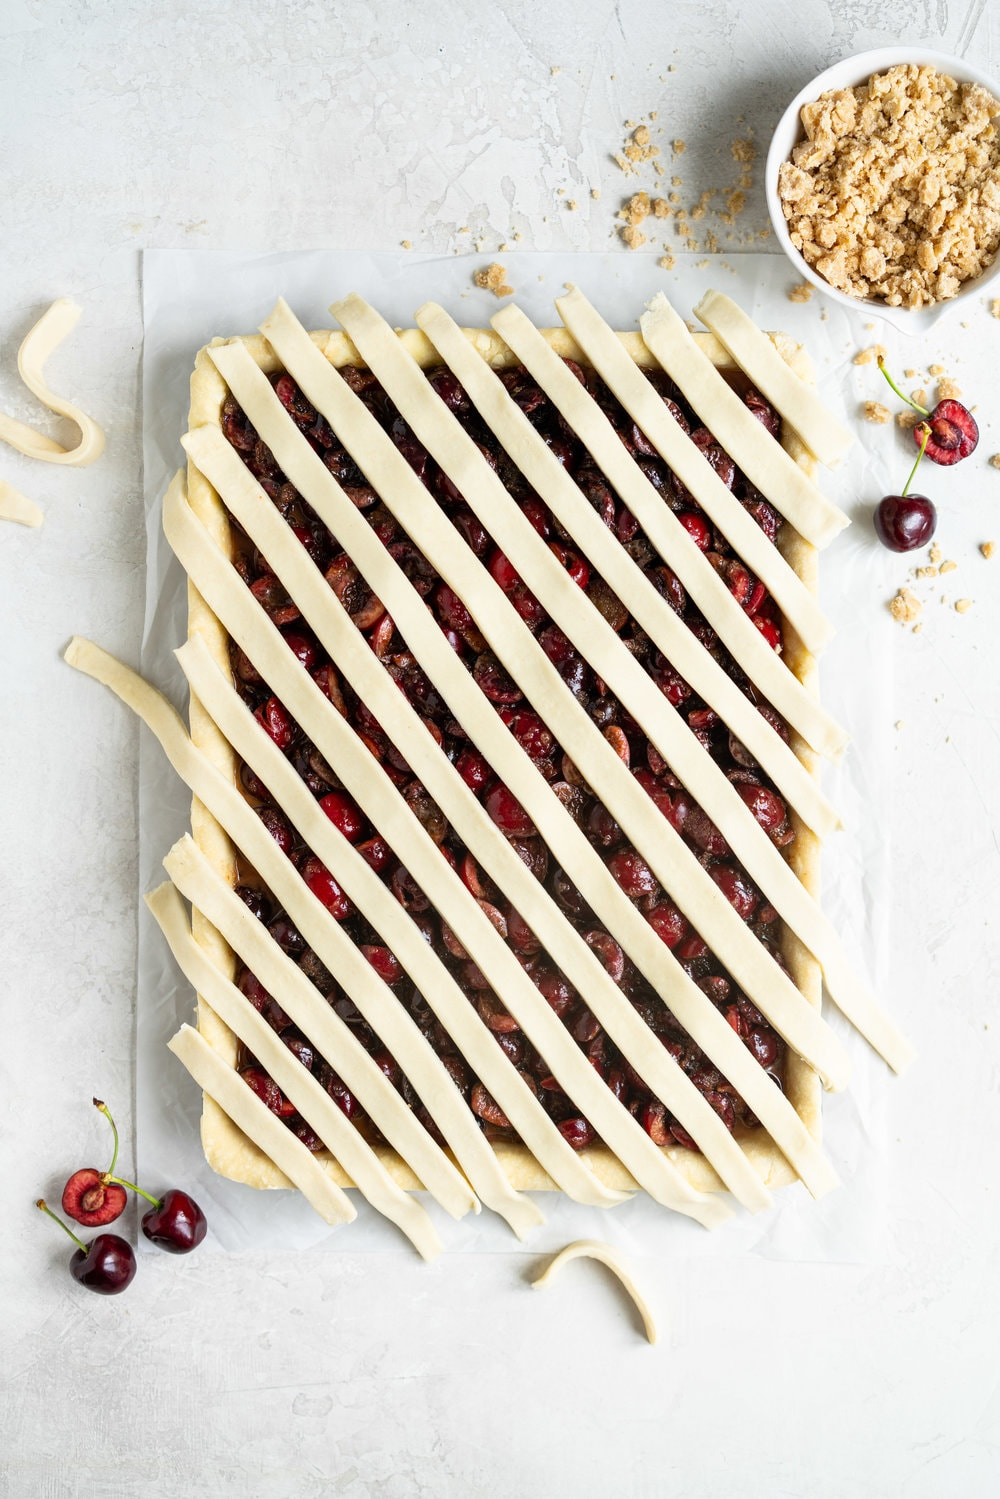 Cherry Slab Pie with Brown Butter Oat Streusel - a thick cherry slab pie is topped with a layer of flaky pastry and finished with a brown butter oat streusel that gives the most perfect crunch. #slabpie #streusel #cherrypie #cherryslabpie